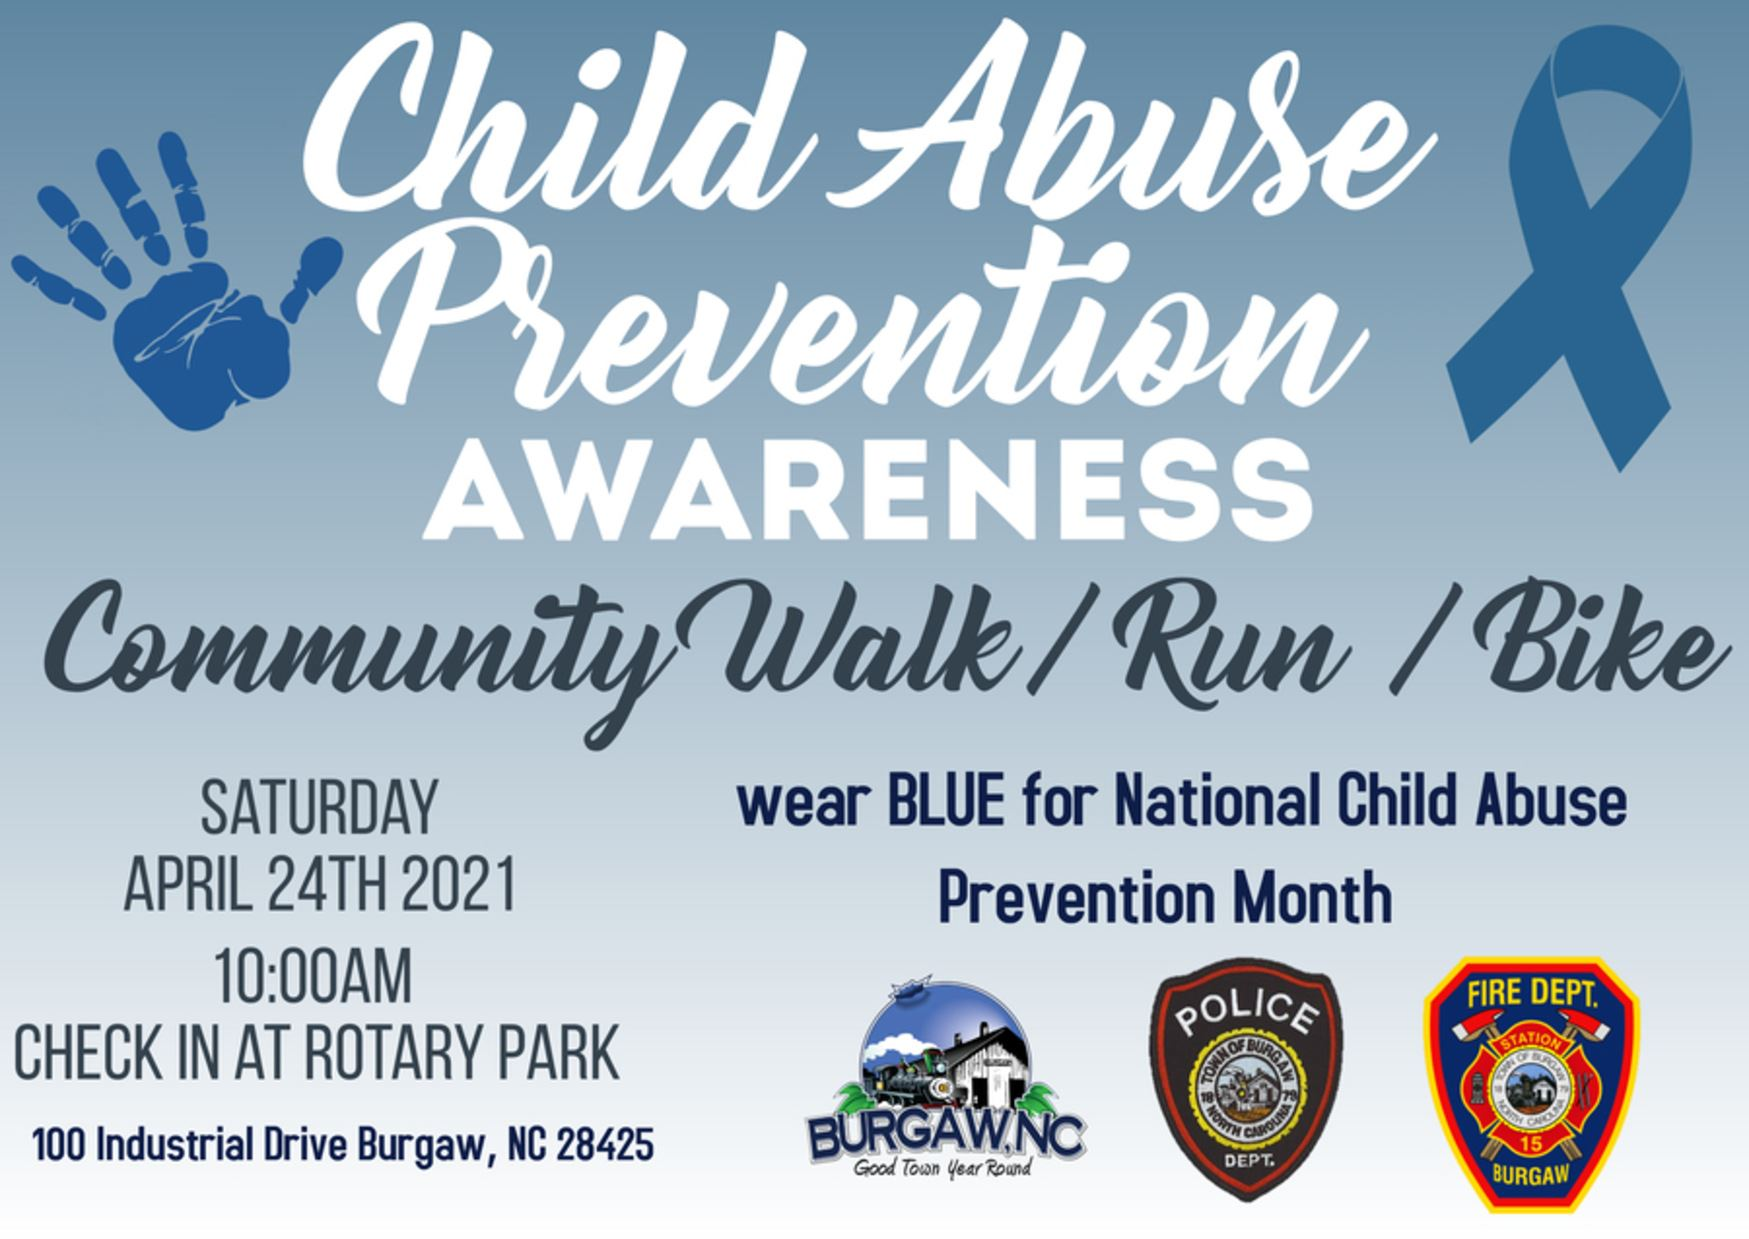 child abuse prevention awareness walk 2021